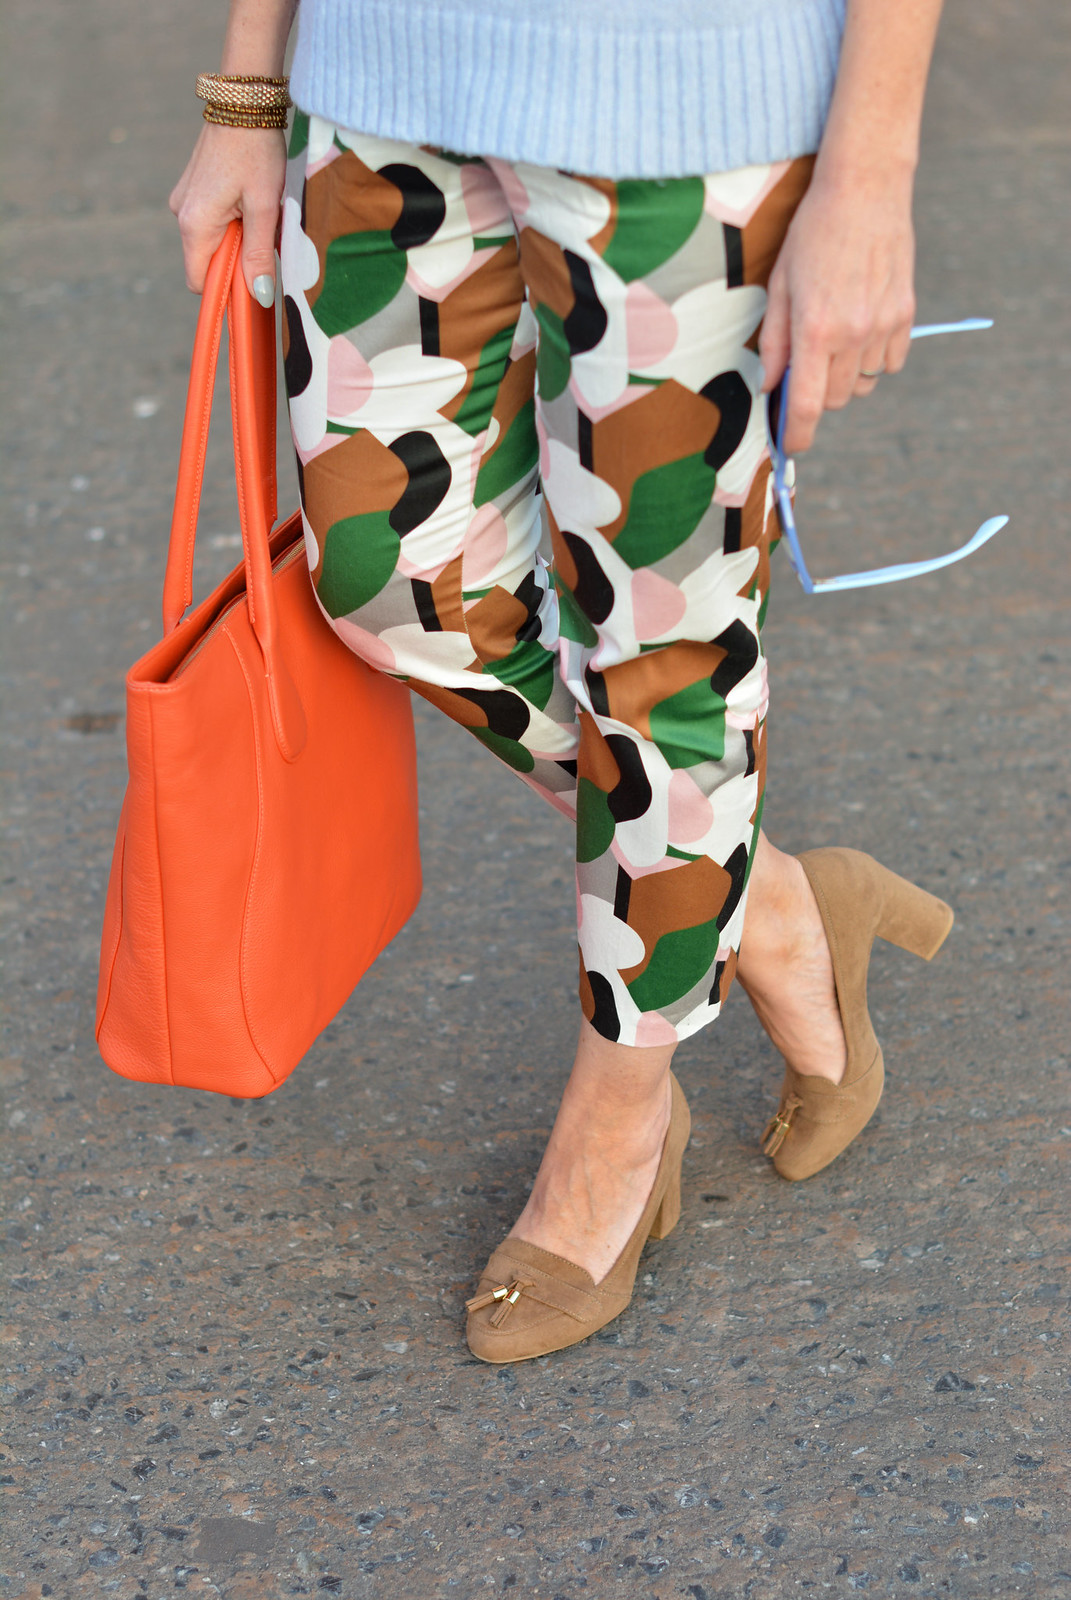 Spring style: Bold patterned pants, pale knit, orange tote | Not Dressed As Lamb